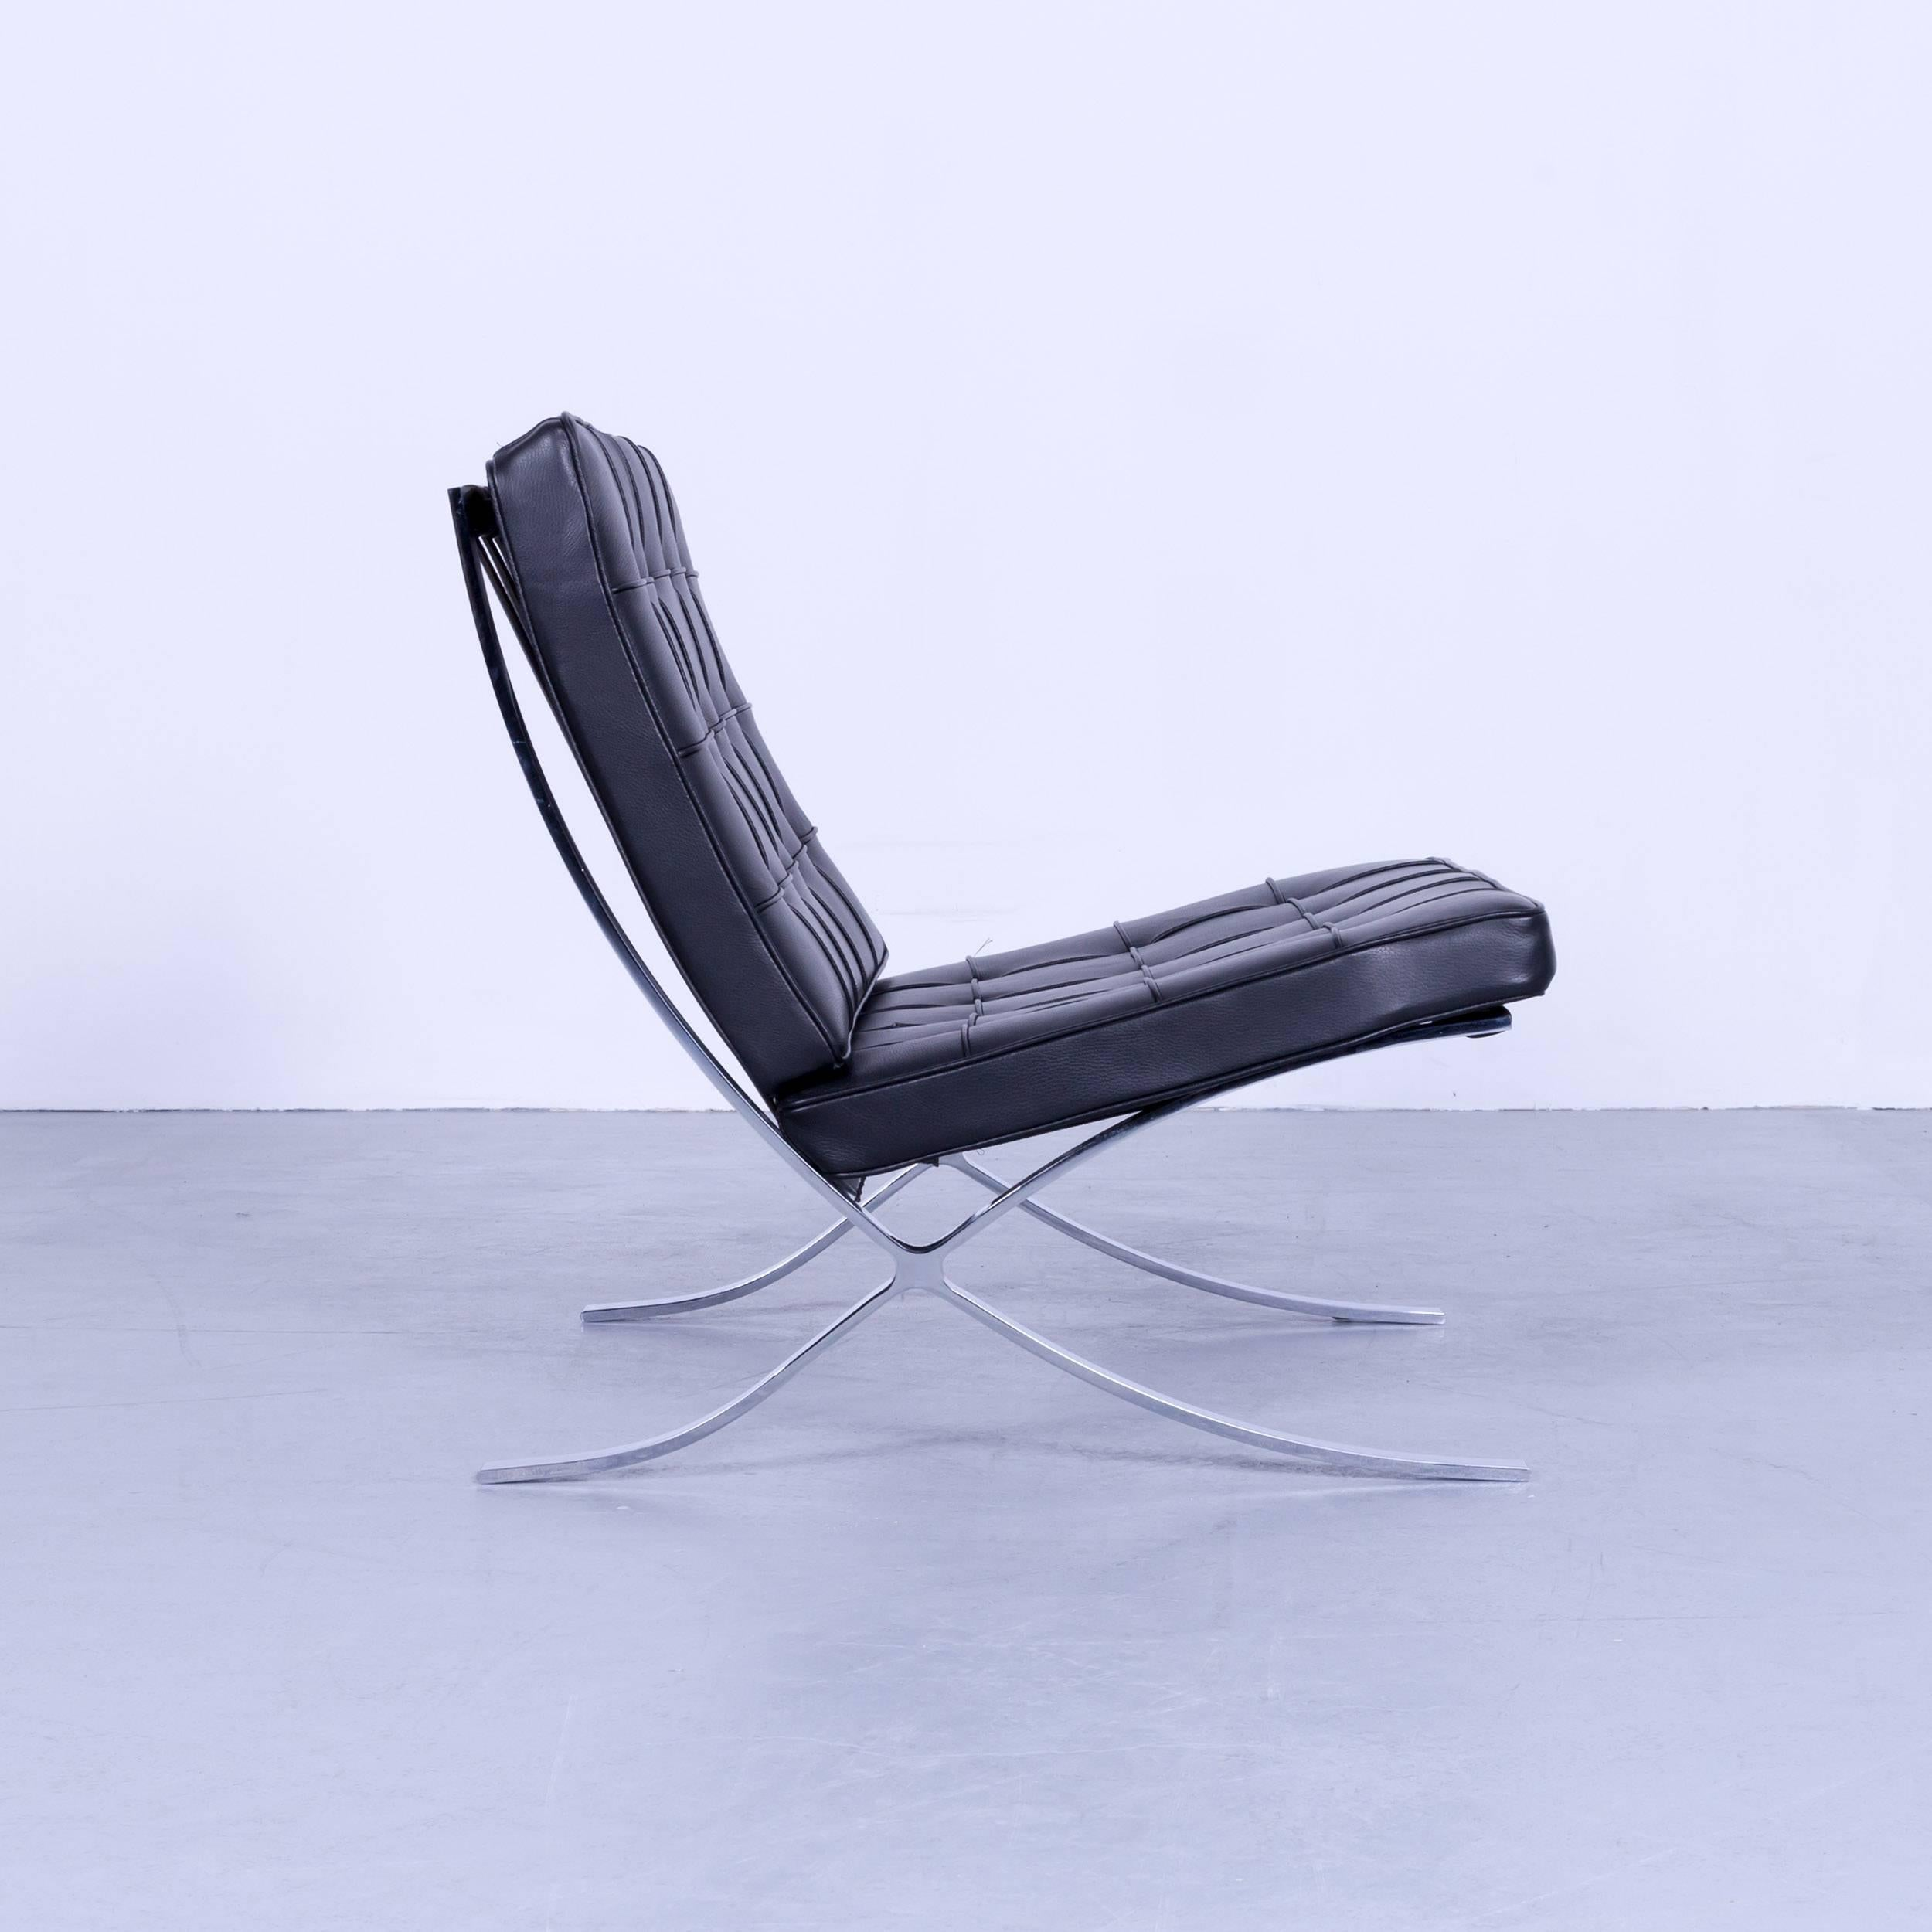 Mies Van Der Rohe Sessel Knoll International Barcelona Chair By Ludwig Mies Van Der Rohe Black Leather